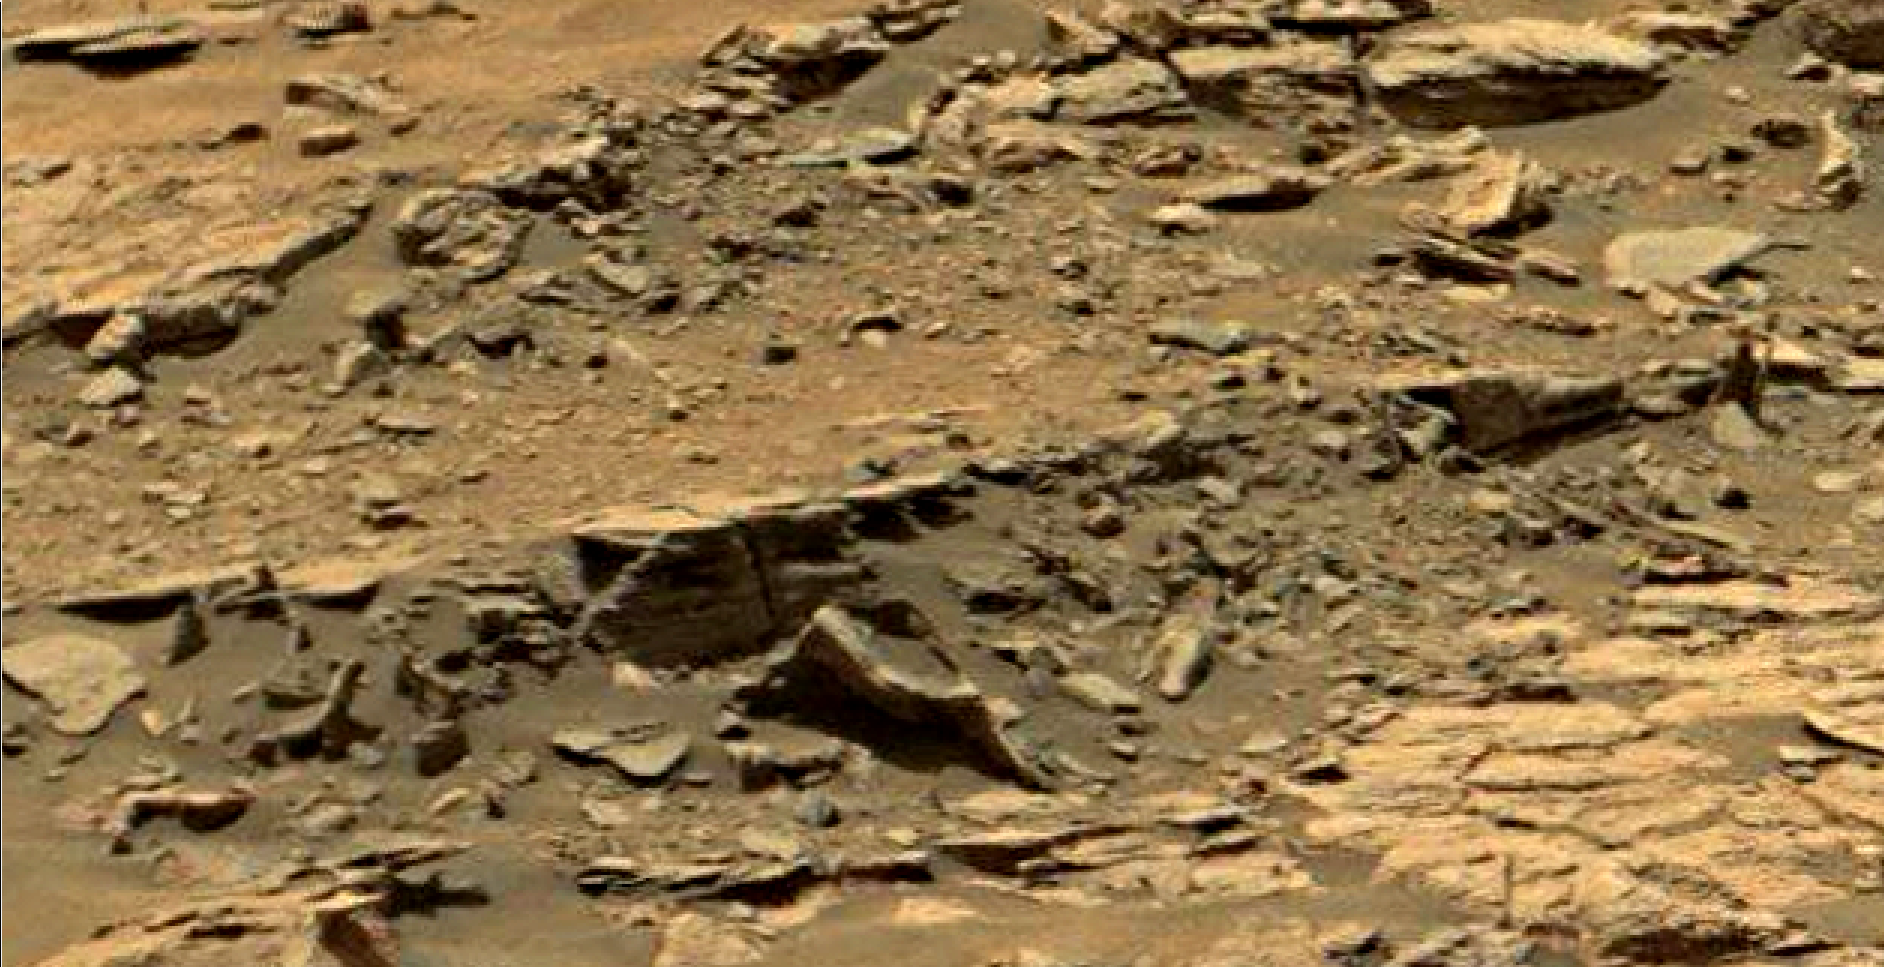 mars sol 1447 anomaly artifacts 6 - was life on mars